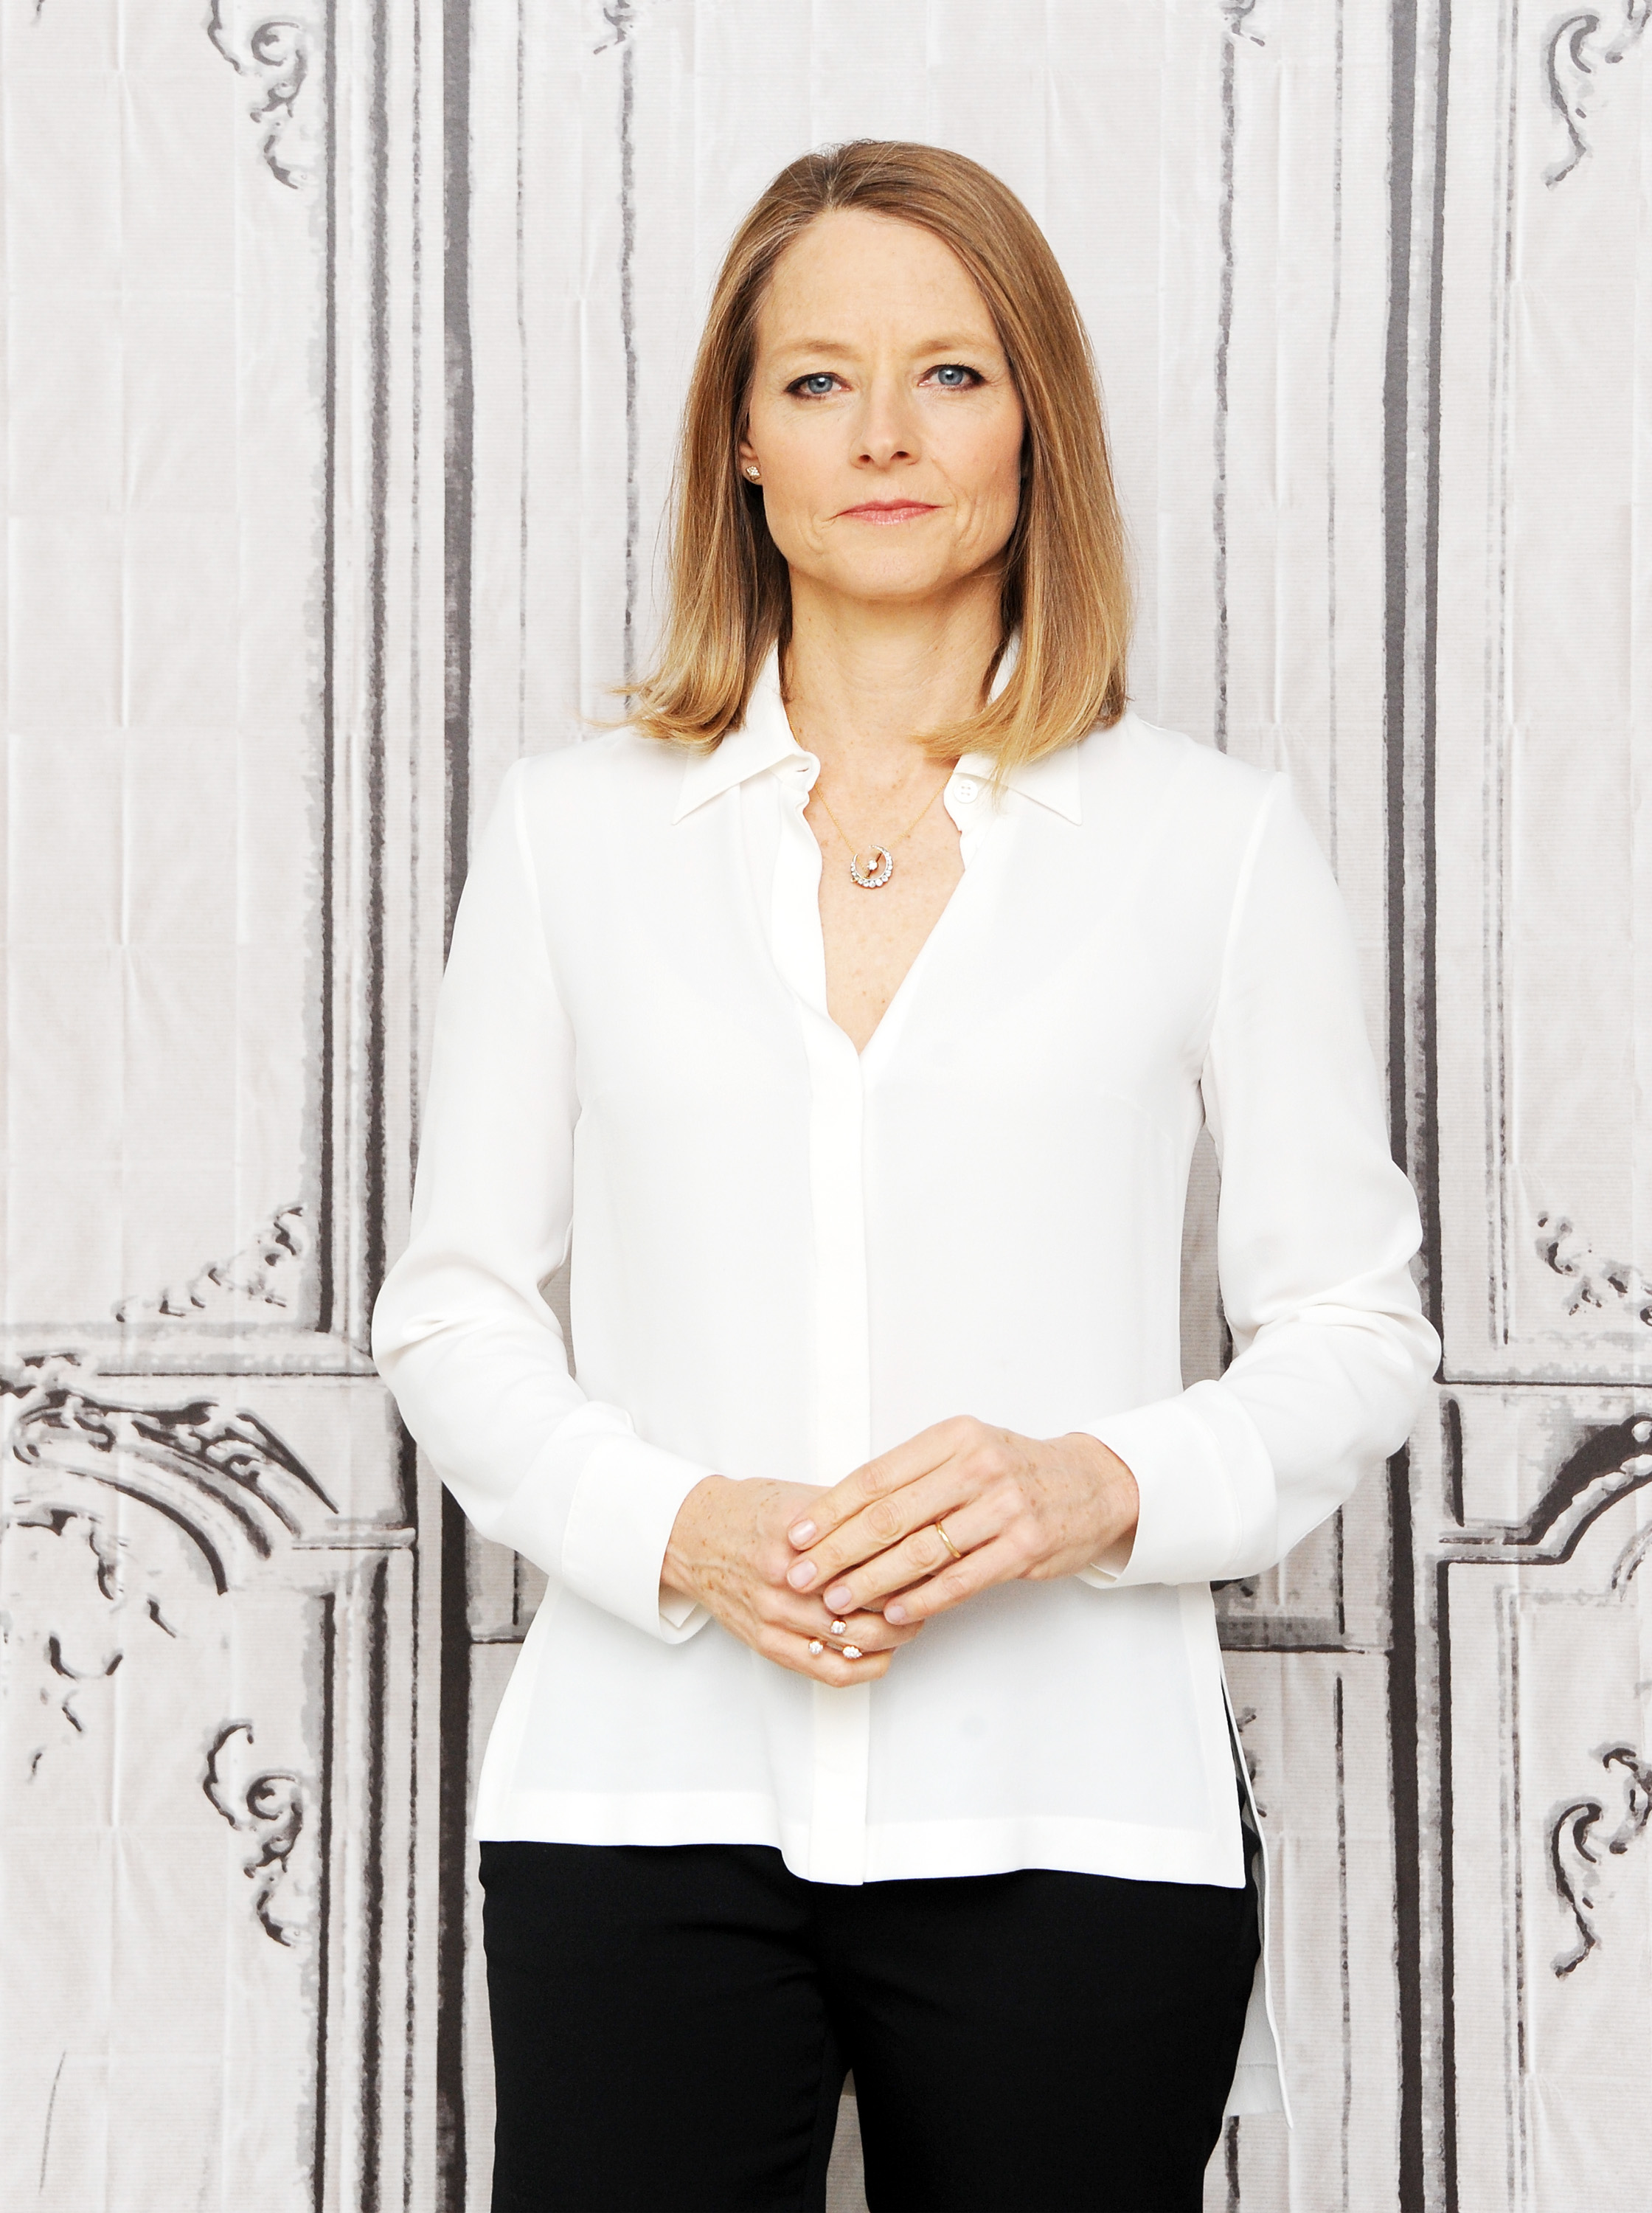 Jodie Foster attends the AOL Build Speaker Series on May 9, 2016 in New York, New York.